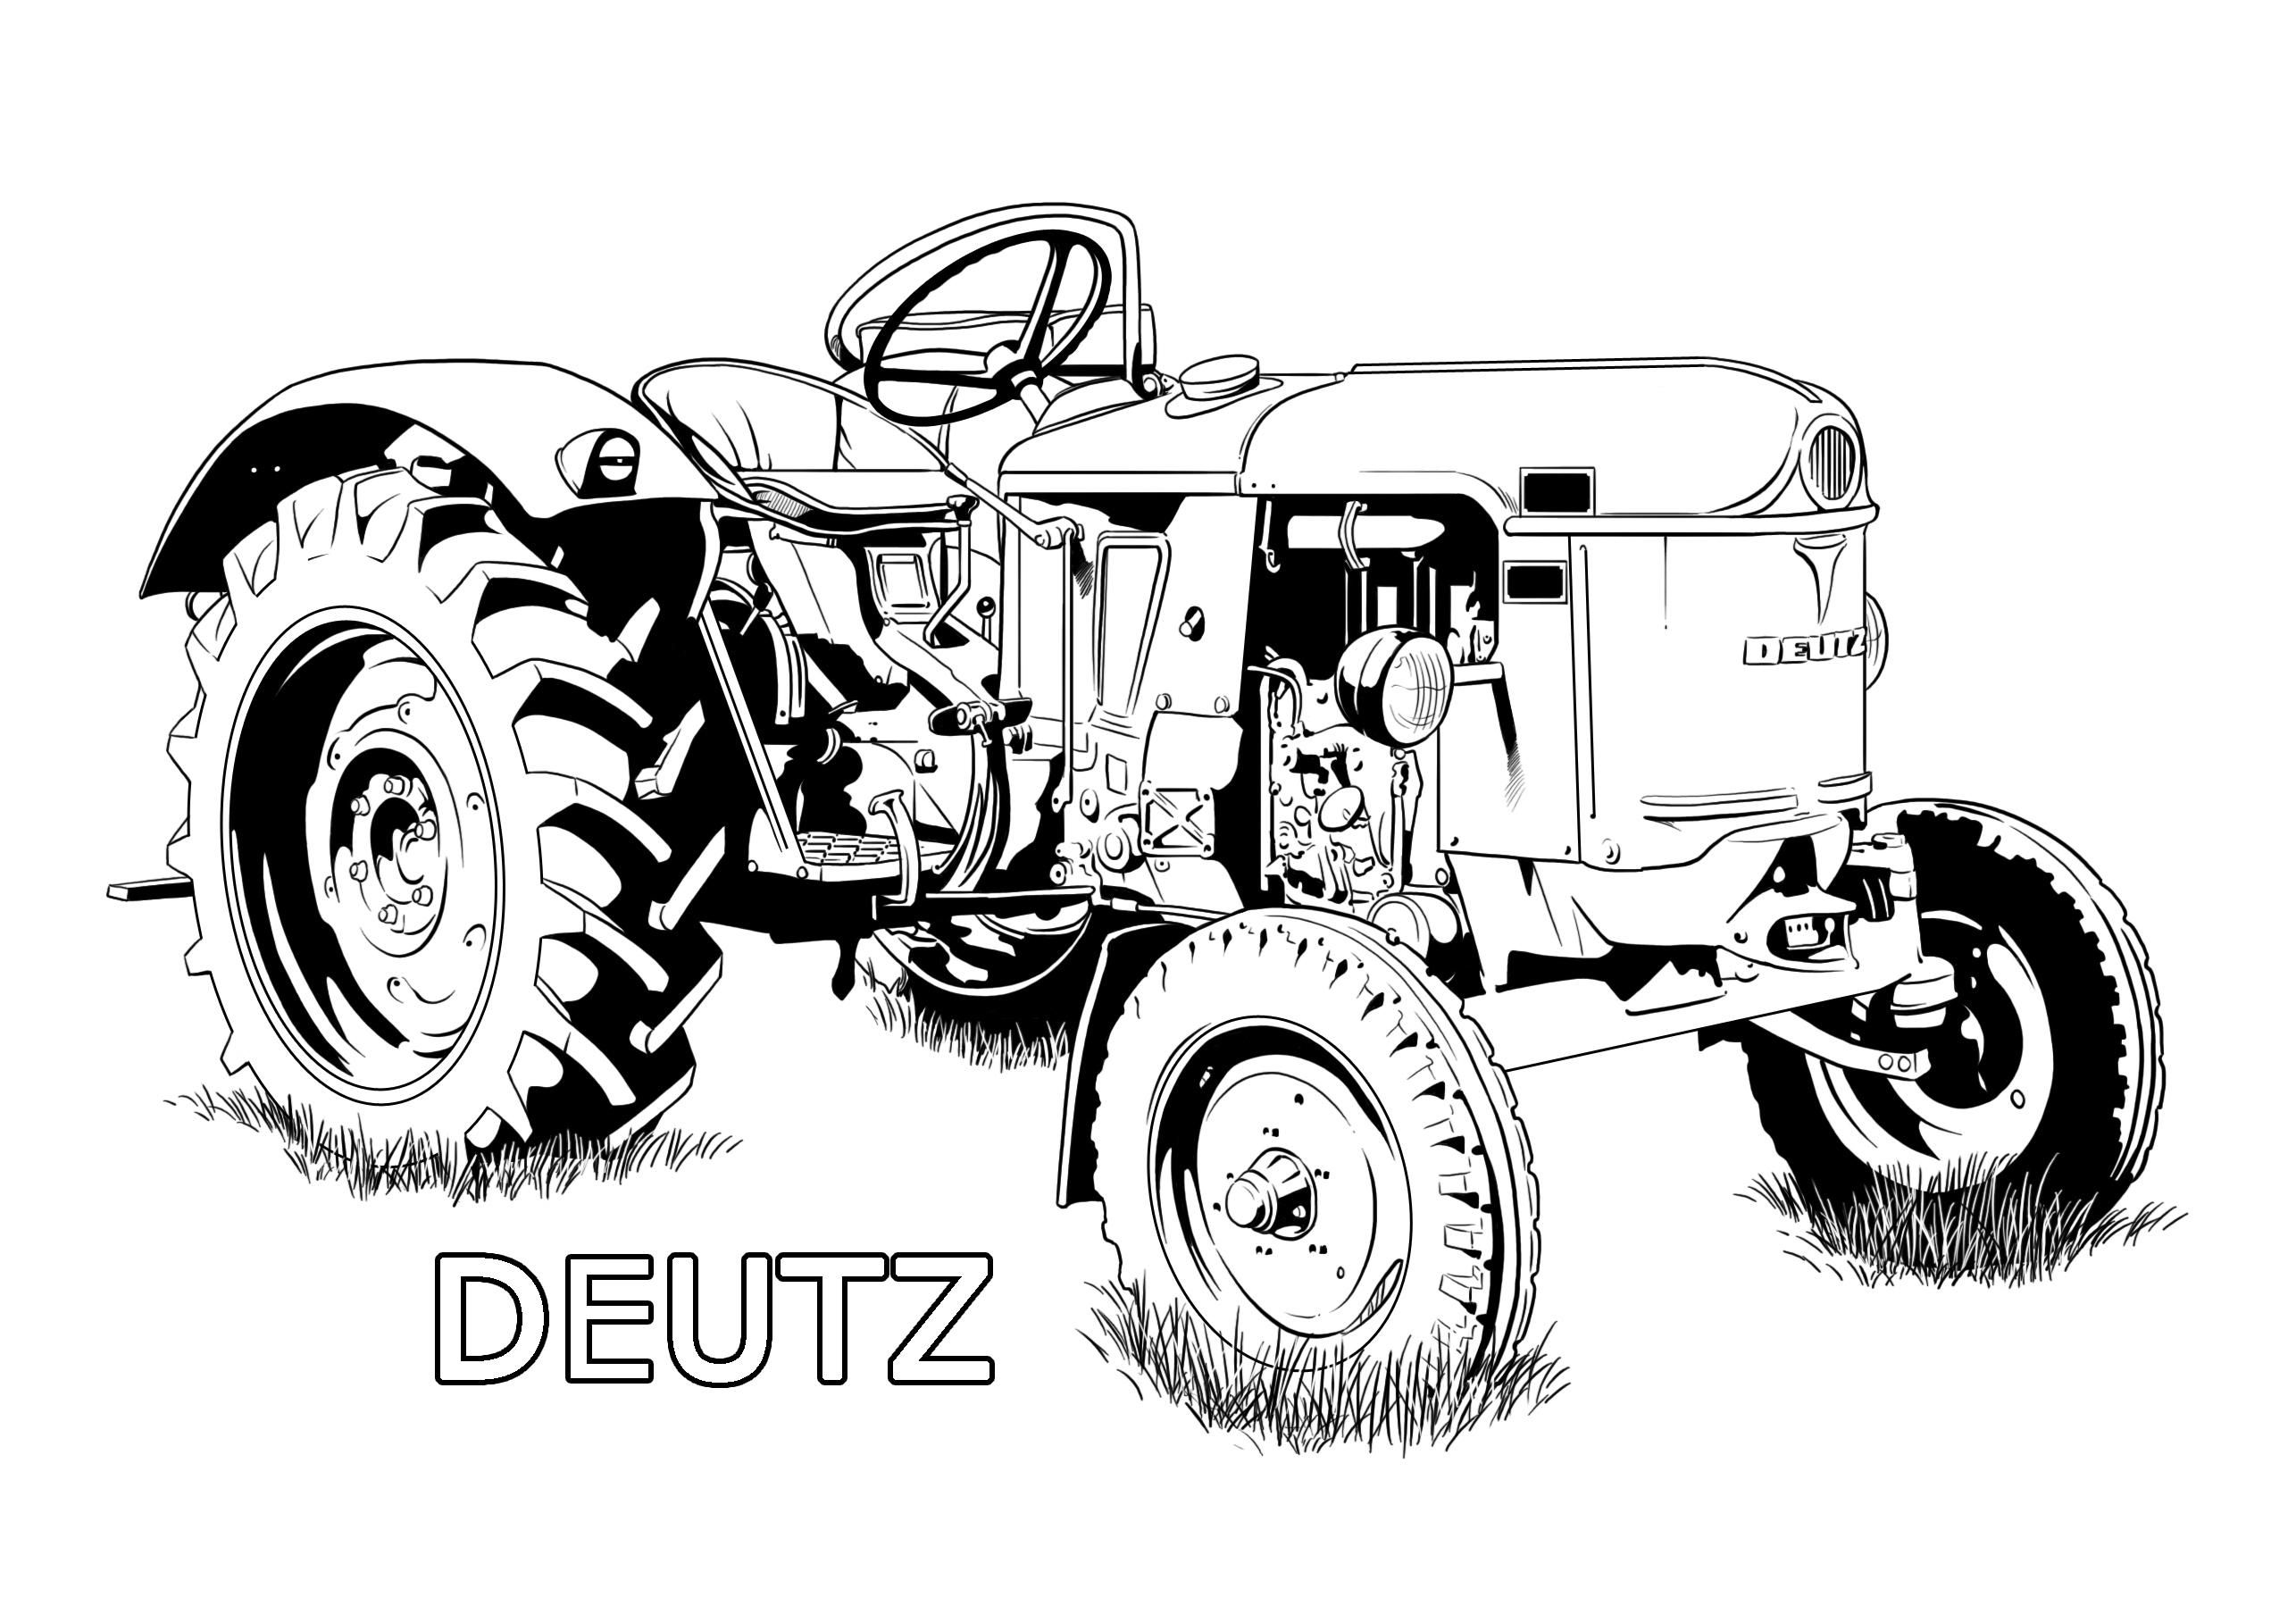 Ausmalbilder Traktor Deutz Stencils All Kinds Ausmalbilder